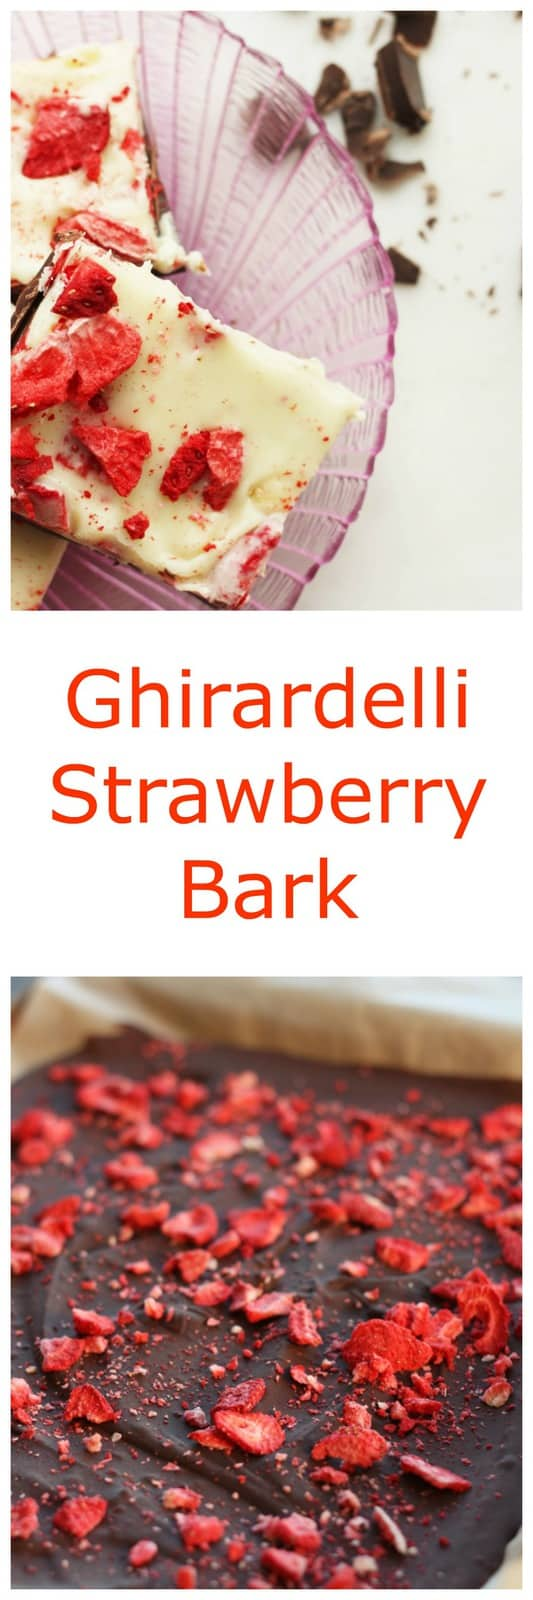 Ghirardelli Strawberry Bark Knock Off is a simple make at home dessert to share for Valentines Day or whenever the mood strikes. Rich chocolate, creamy white chocolate, and dried strawberries make for an easy and sinful dessert.